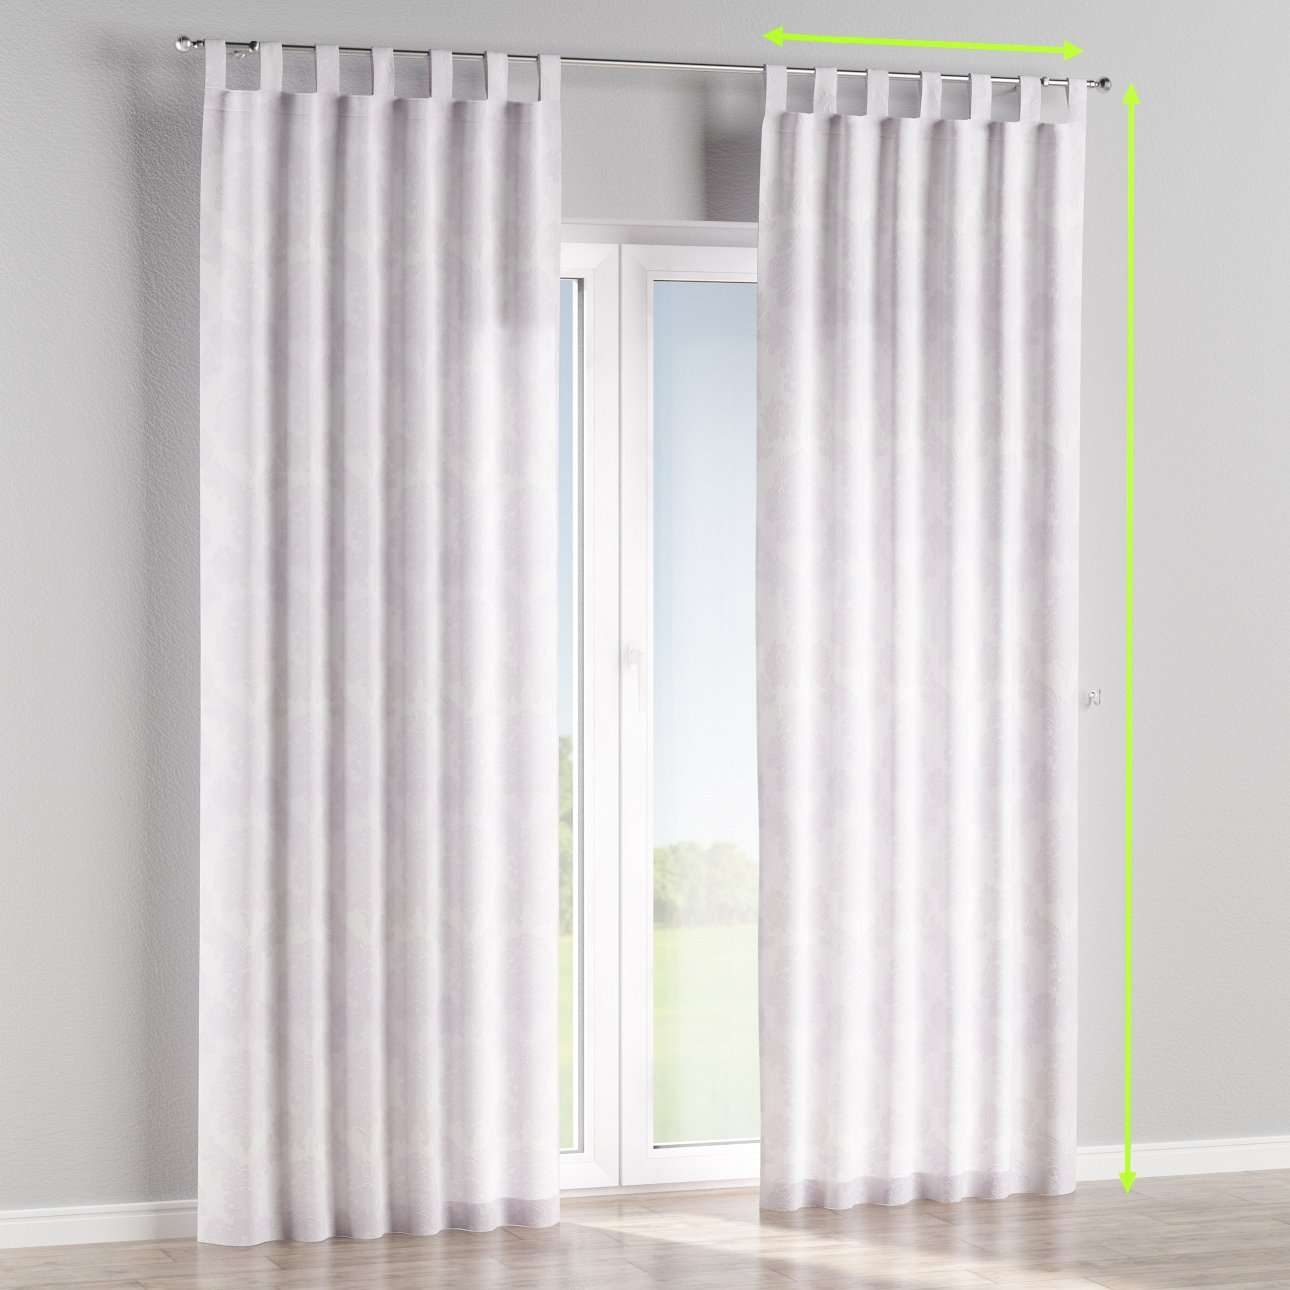 Tab top lined curtains in collection Damasco, fabric: 613-00